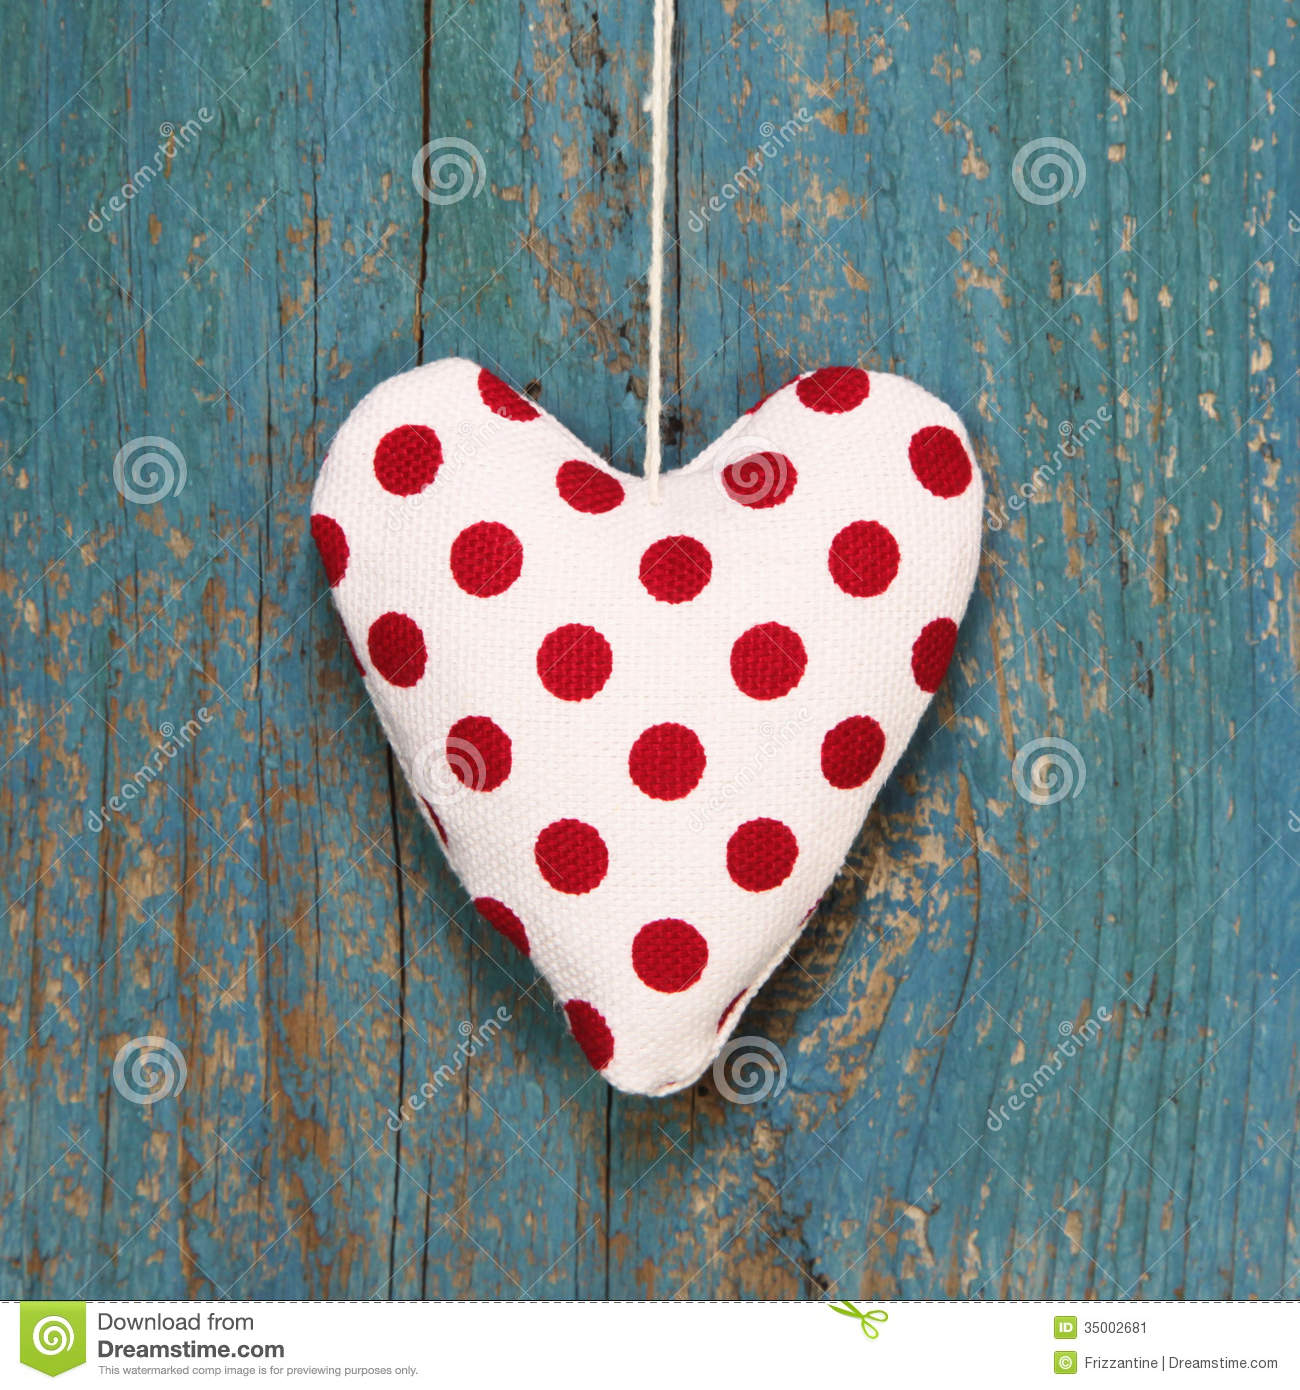 Polka dotted heart on turquoise wooden surface in country style.